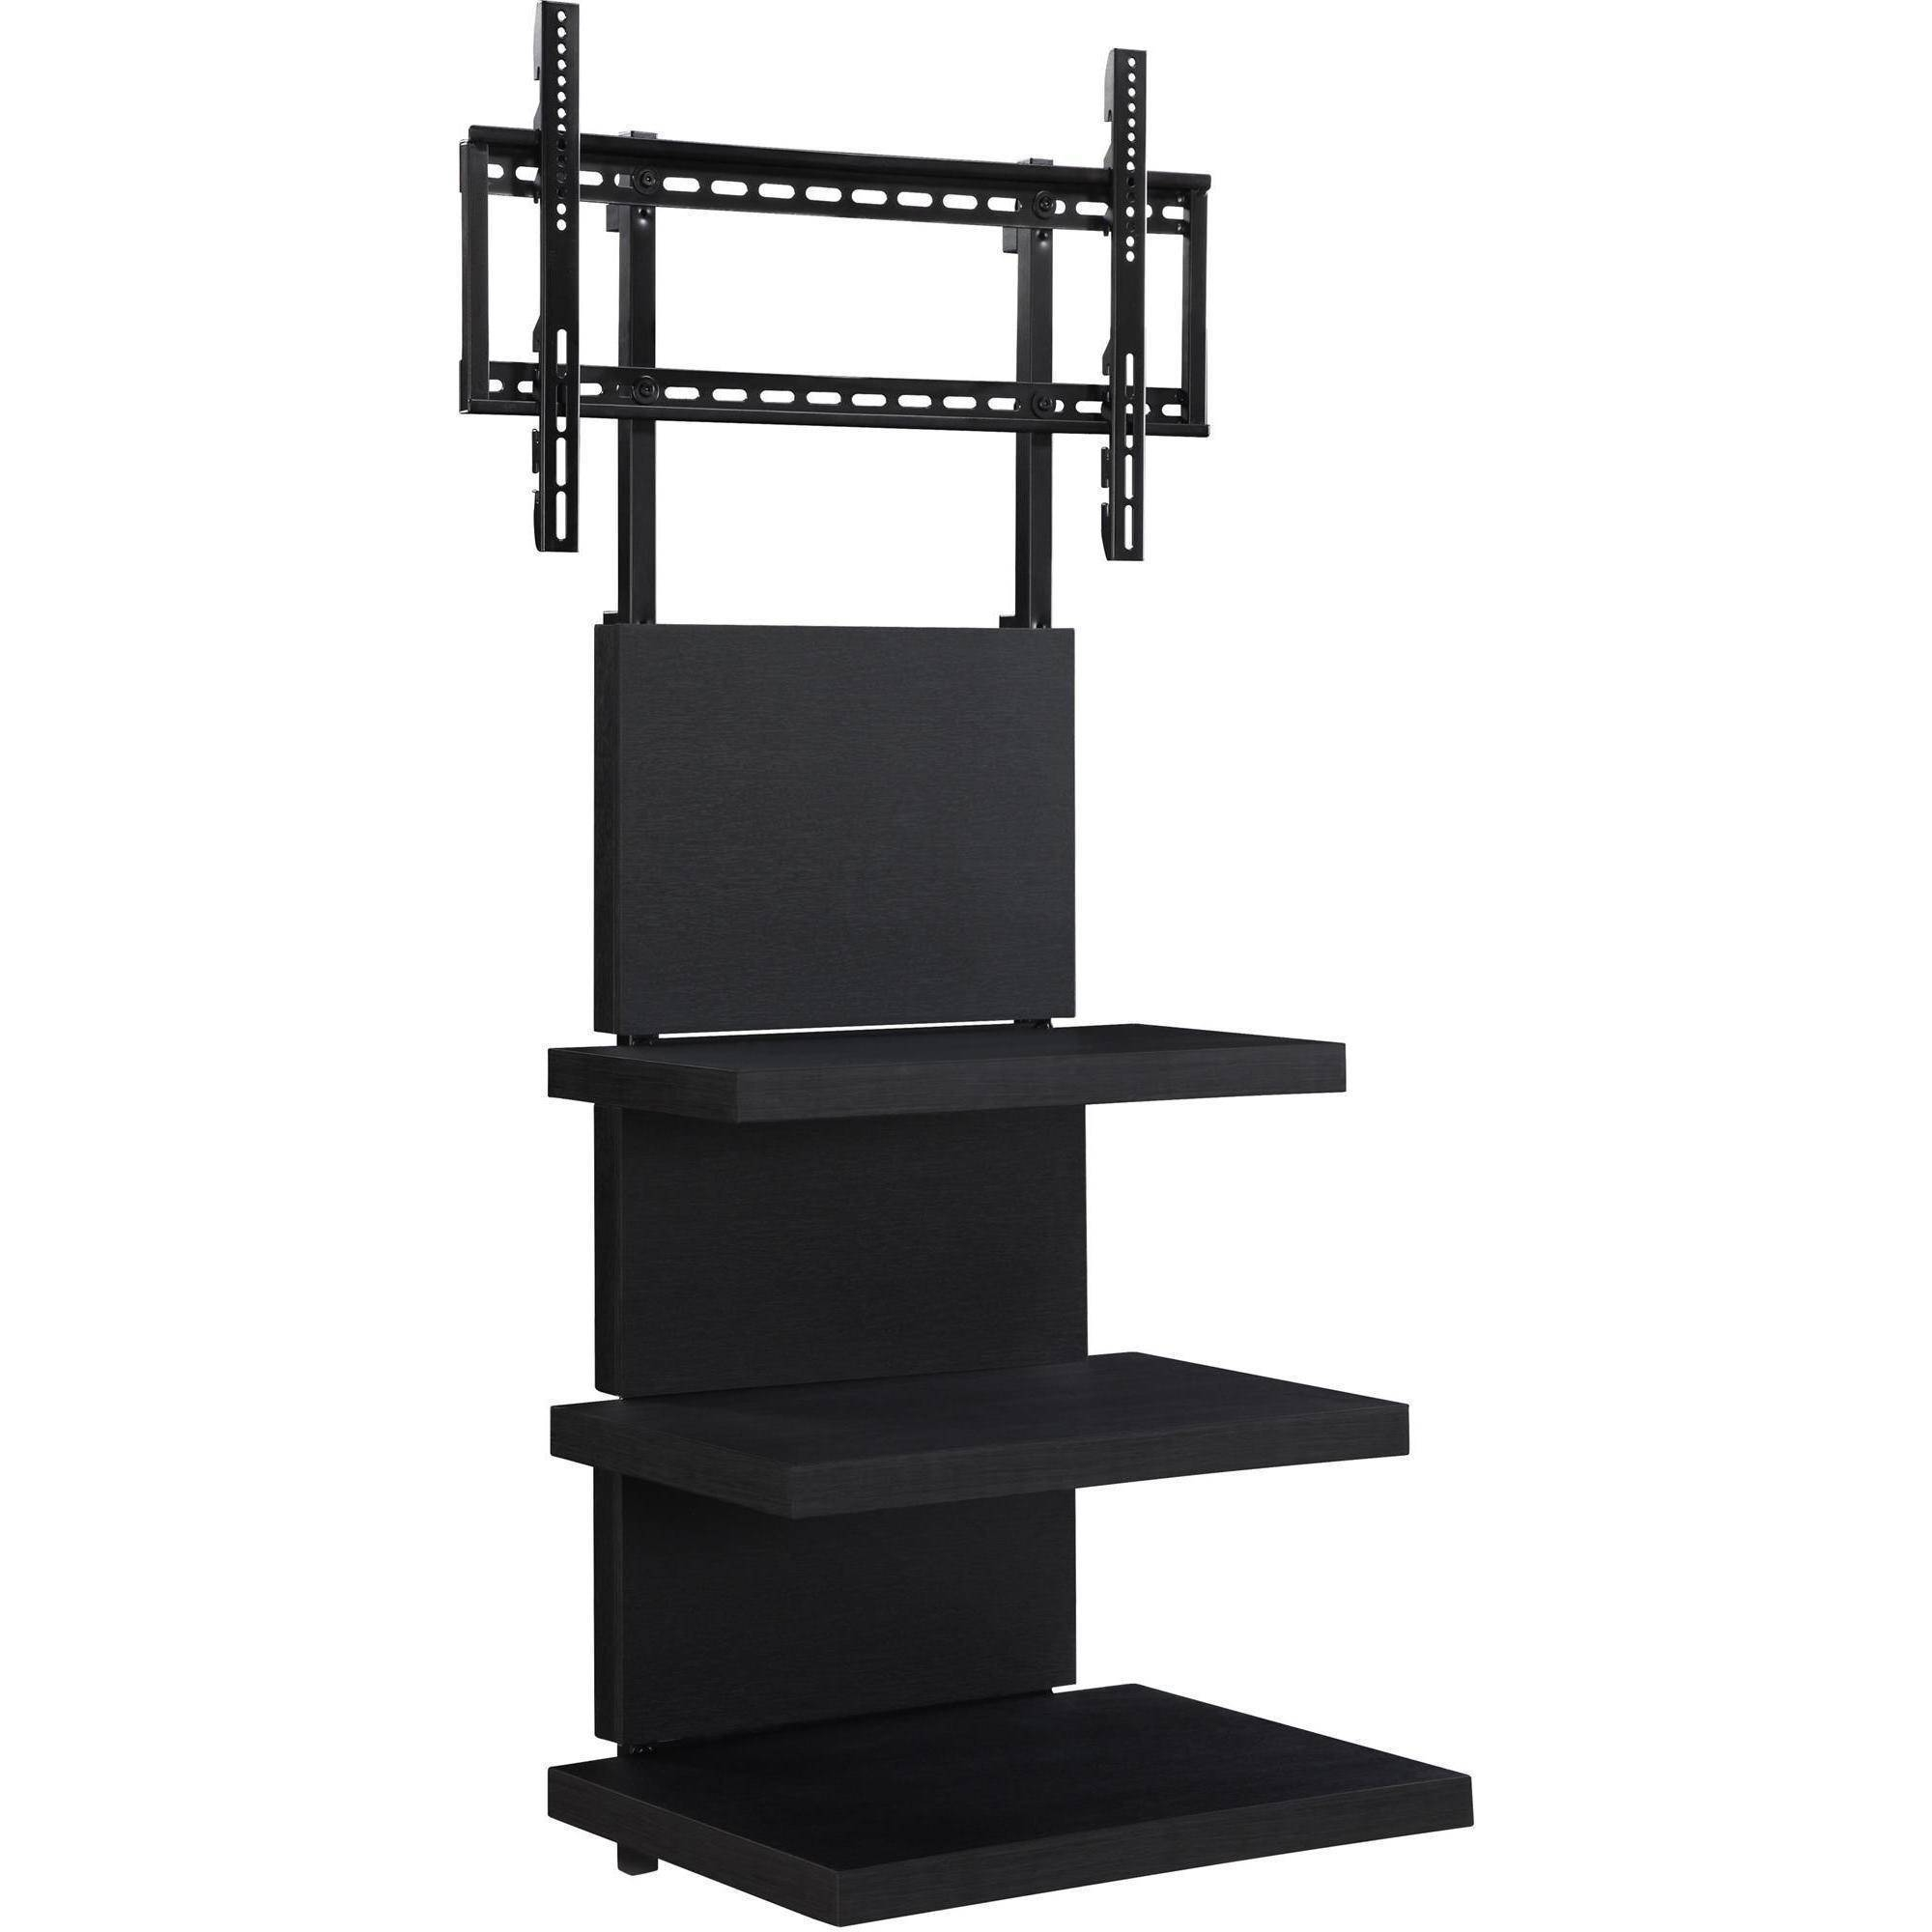 Ameriwood Home Elevation Altramount Tv Stand For Tvs Up To 60 For Universal 24 Inch Tv Stands (View 15 of 15)